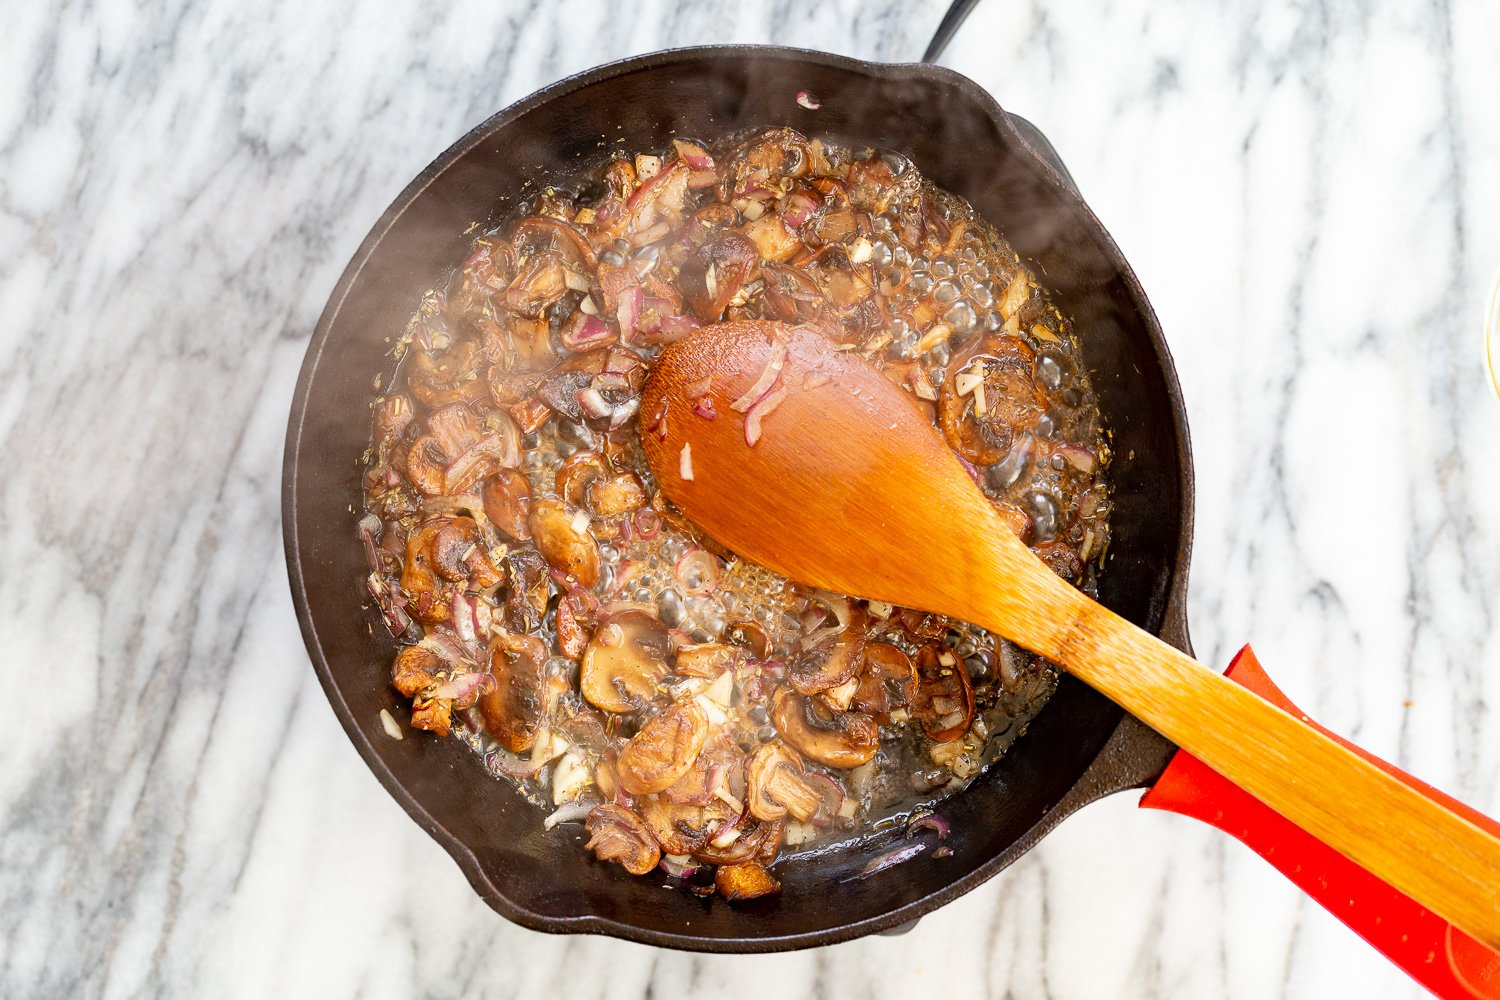 Mushrooms and wine in a cast iron skillet